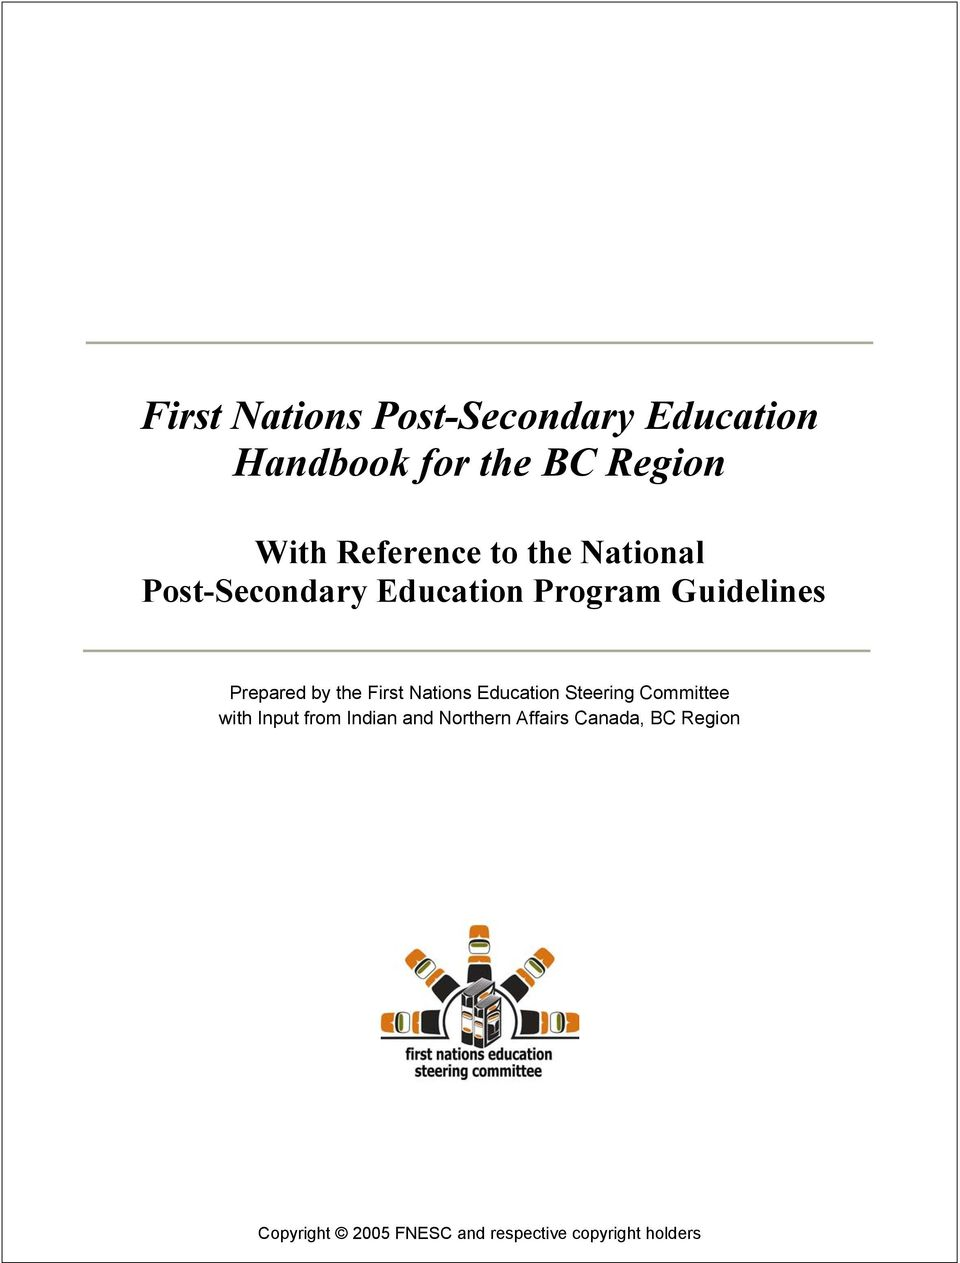 by the First Nations Education Steering Committee with Input from Indian and